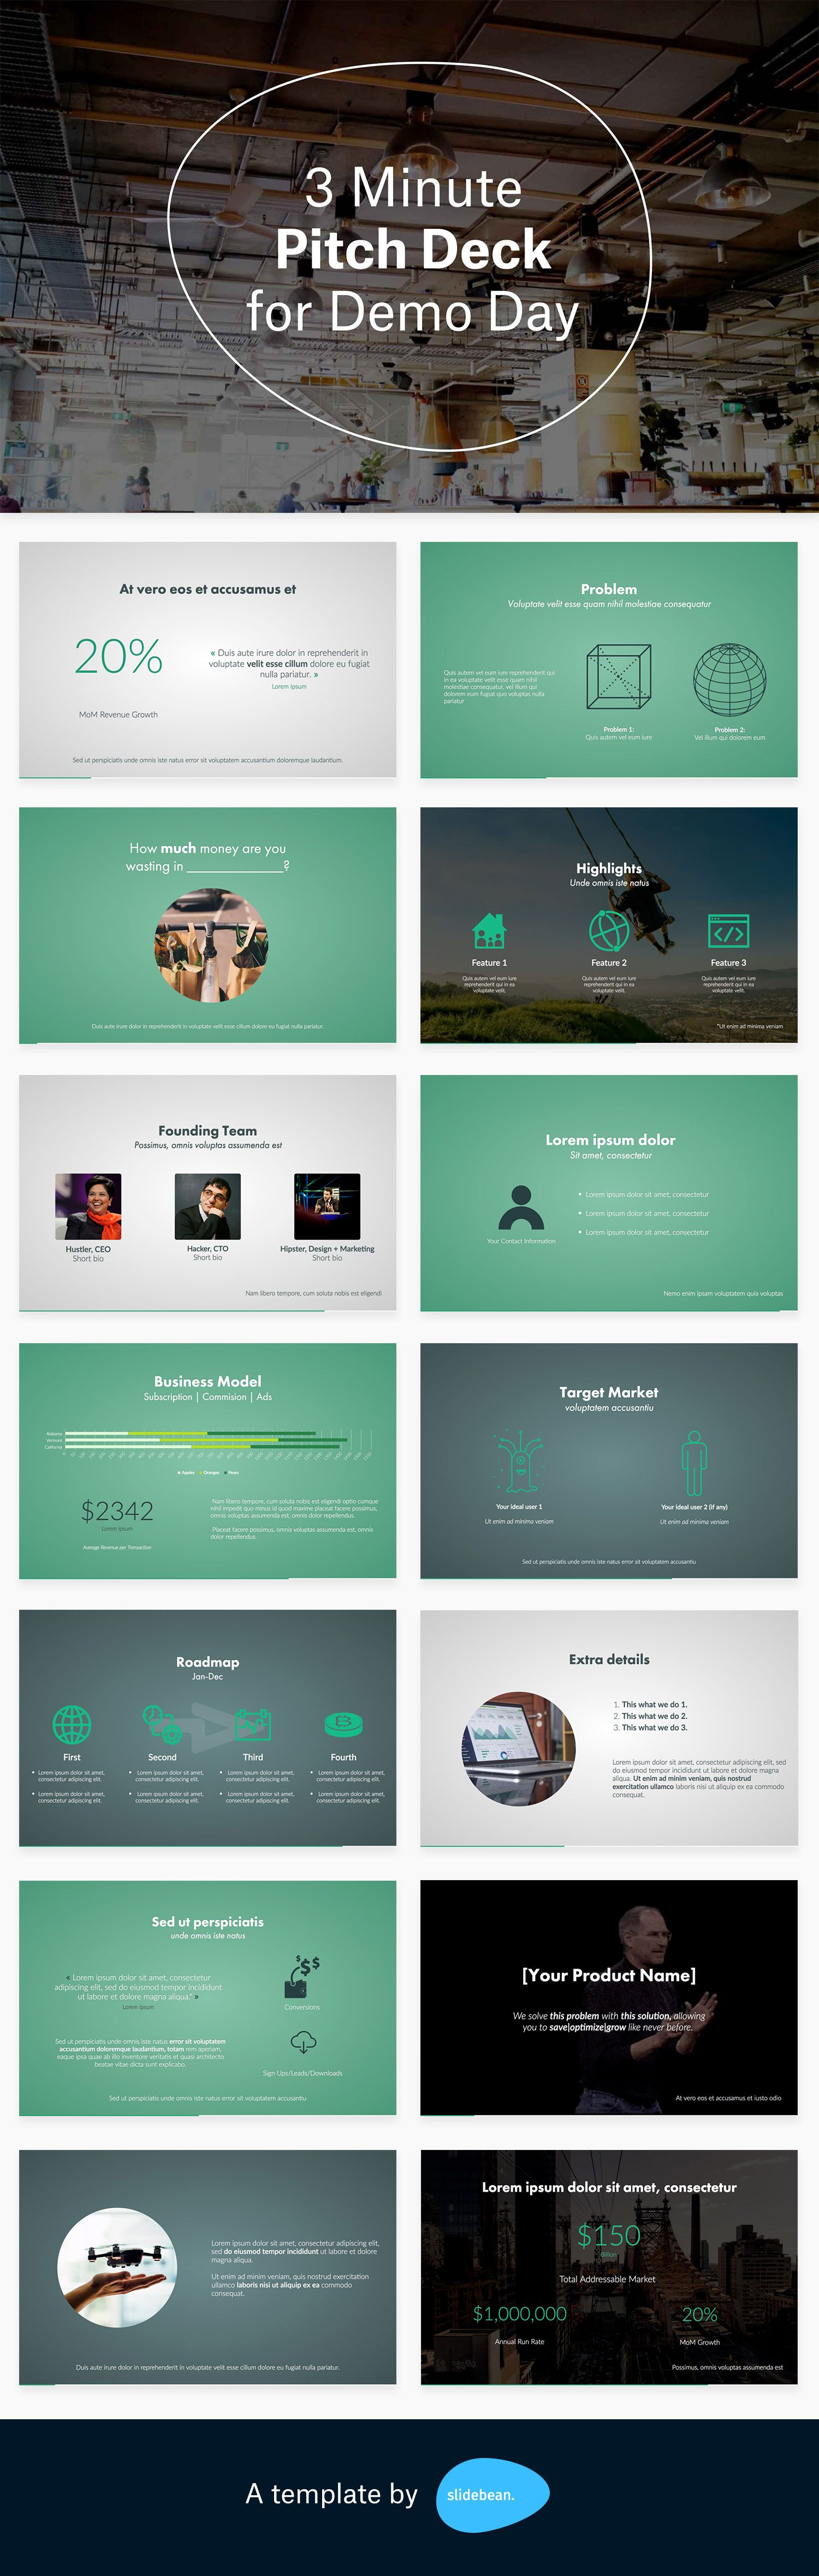 3 Minute Pitch Deck For Demo Day Free Presentation Templates